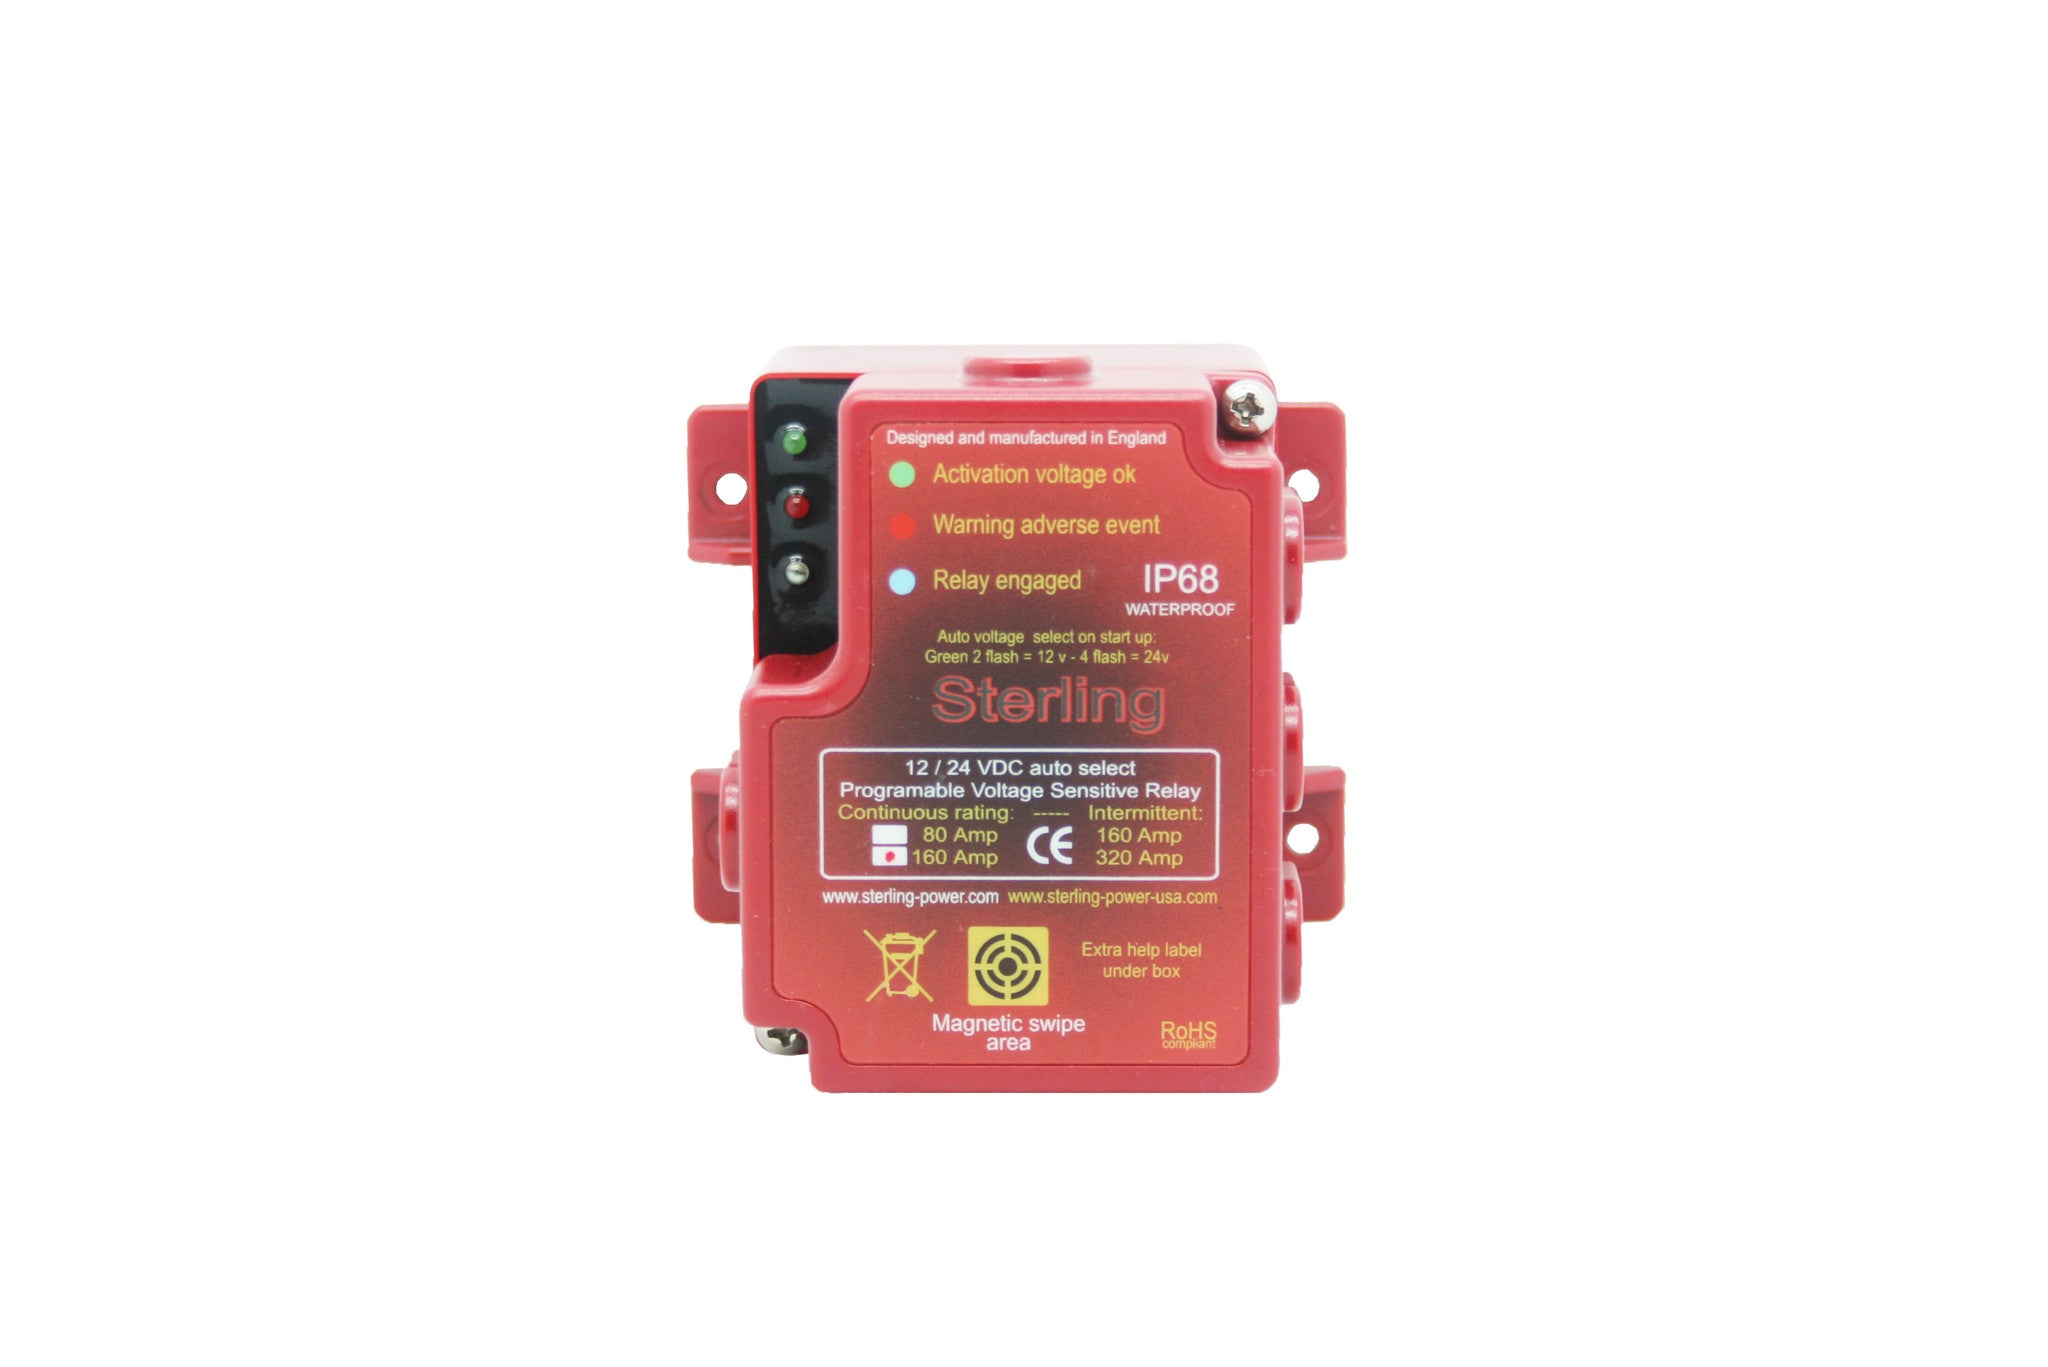 12 Volt Voltage Sensitive Relay Mlacr Automatic Charging With Manual Control 12v Dc 500a Digital 80 160a 1224v Sterling Power